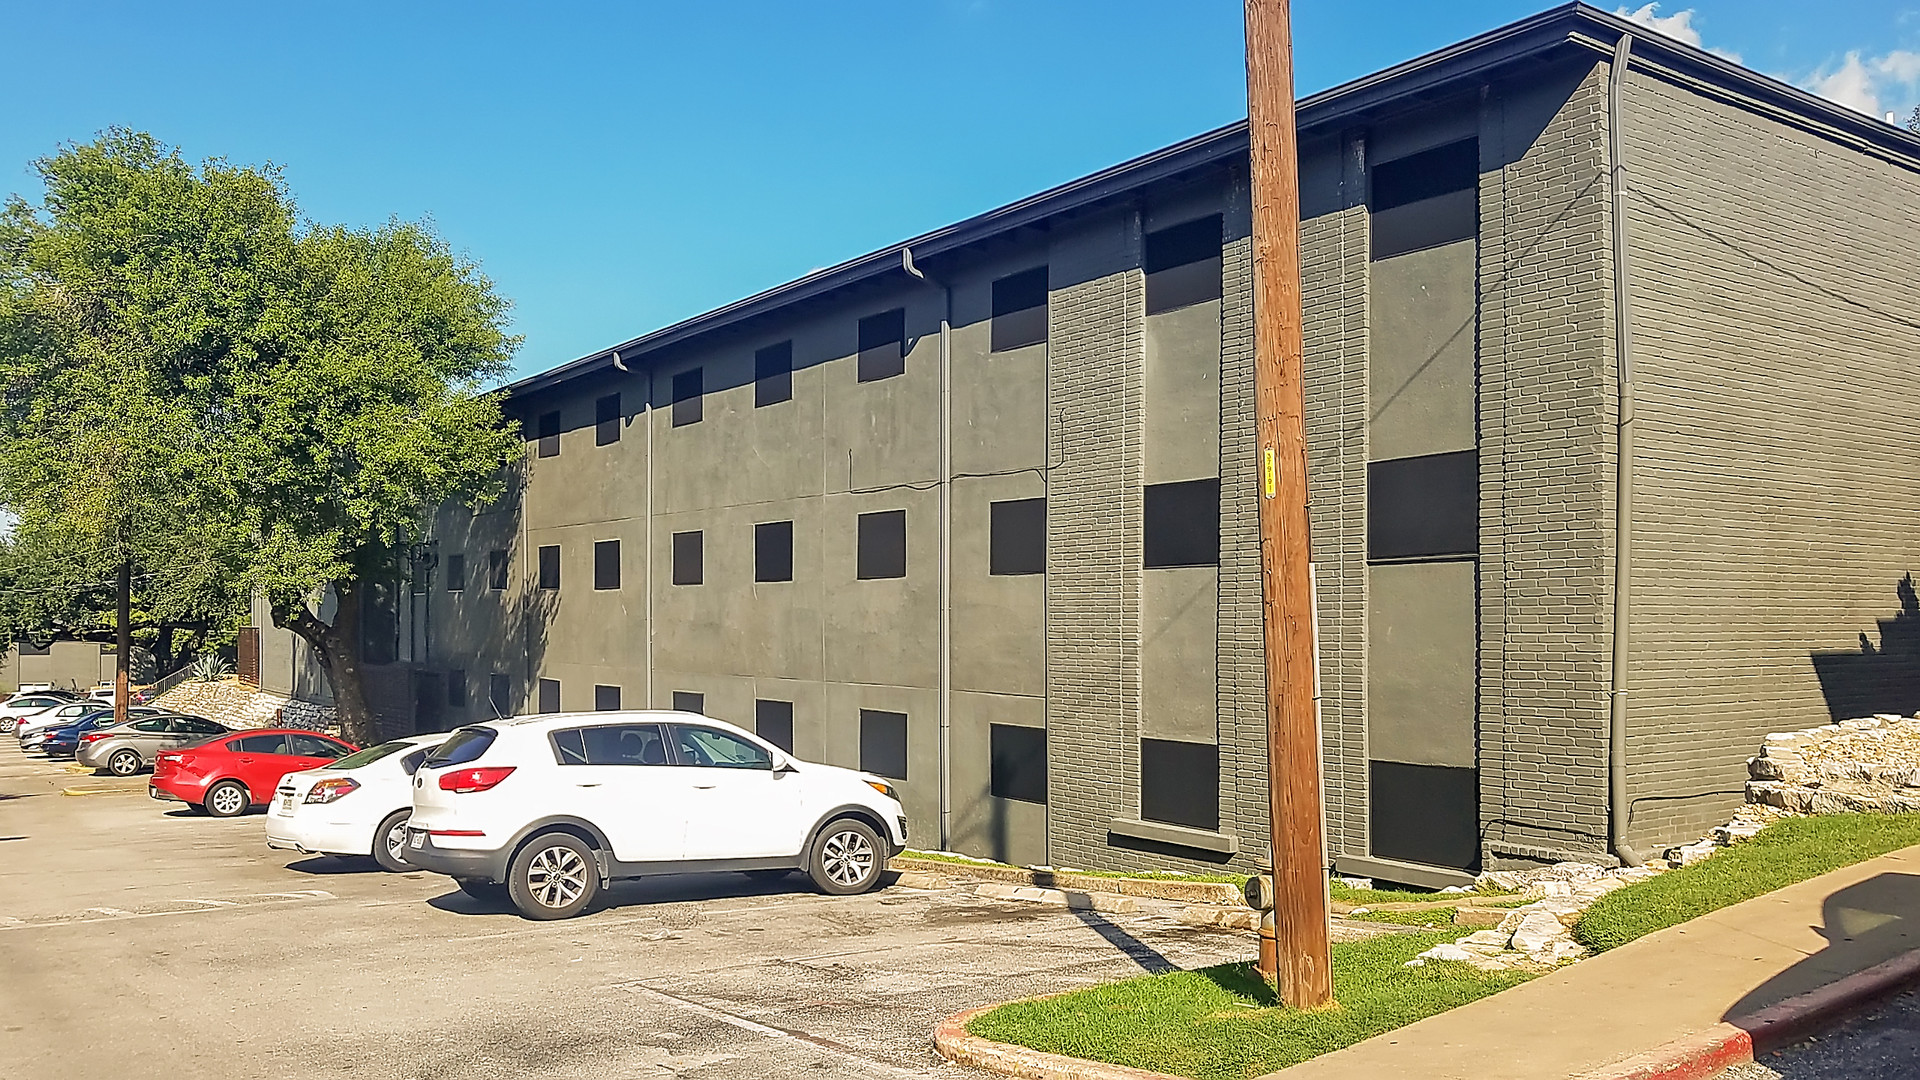 New Braunsfels Texas Apartment solar screens.